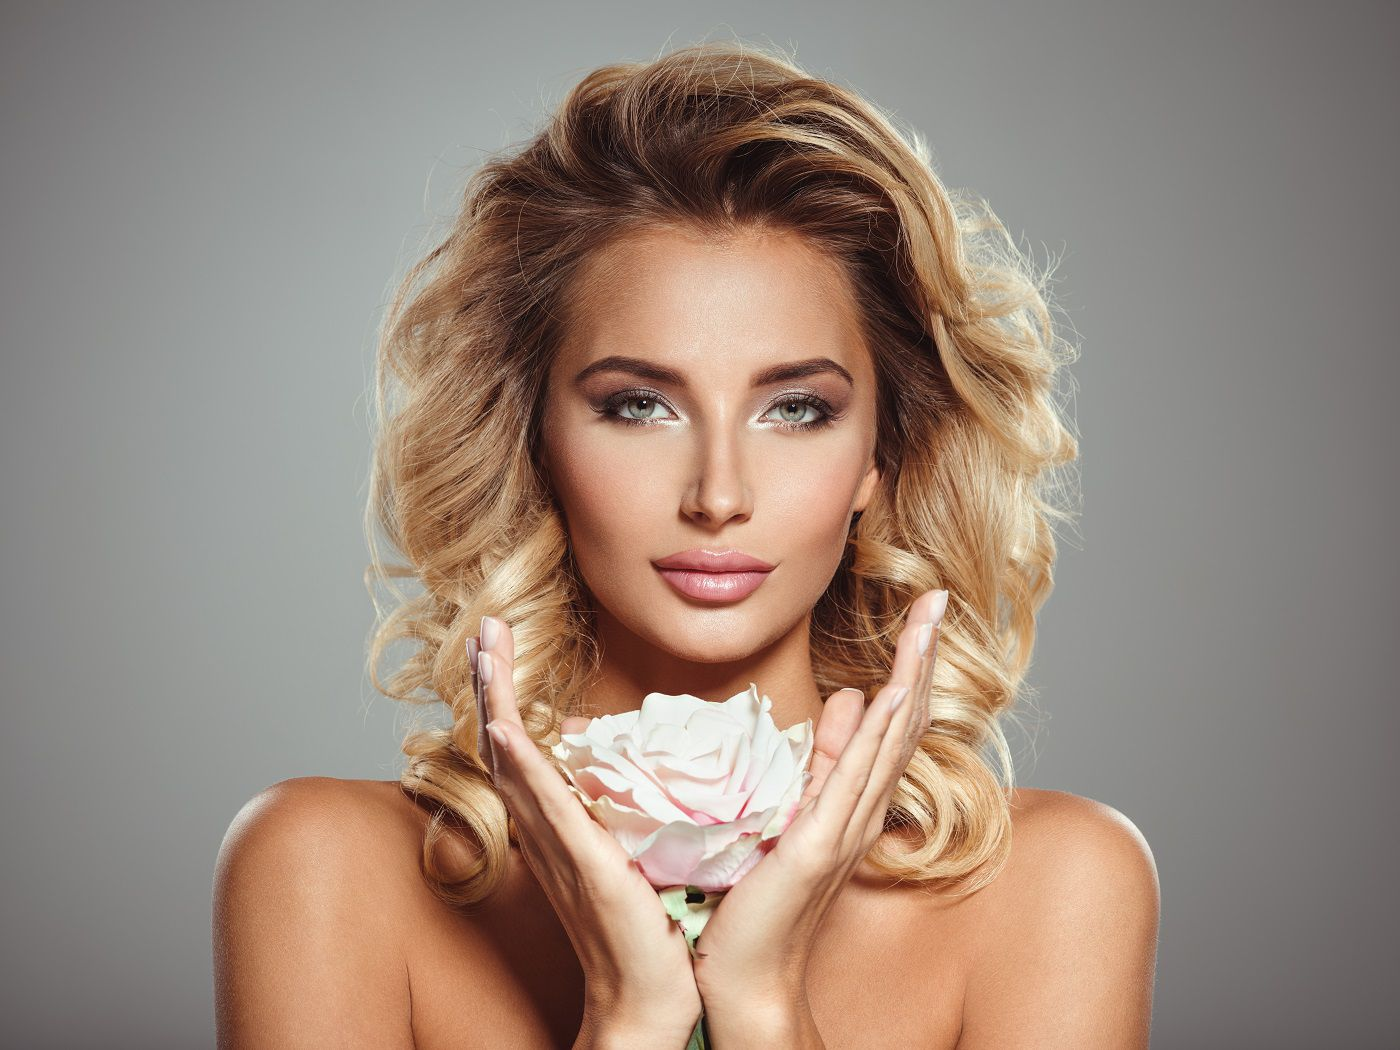 diamond-face-photo-beautiful-blond-woman-with-flower-closeup-attractive-sensual-face-white-woman-with-curly-hair-smokey-eye-makeup.jpg